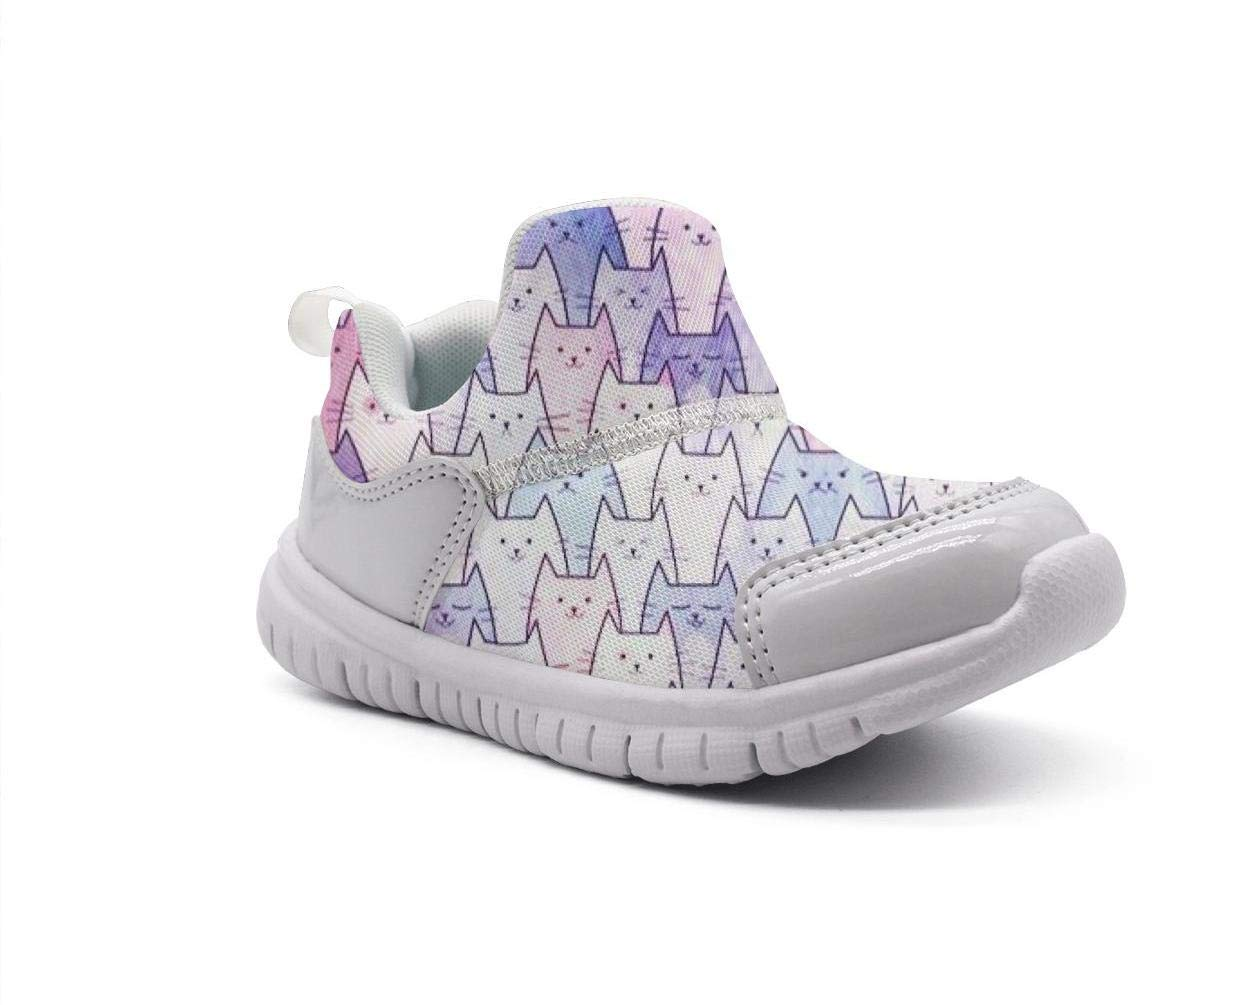 ONEYUAN Children Watercolors Cats Galaxy Kid Casual Lightweight Sport Shoes Sneakers Running Shoes